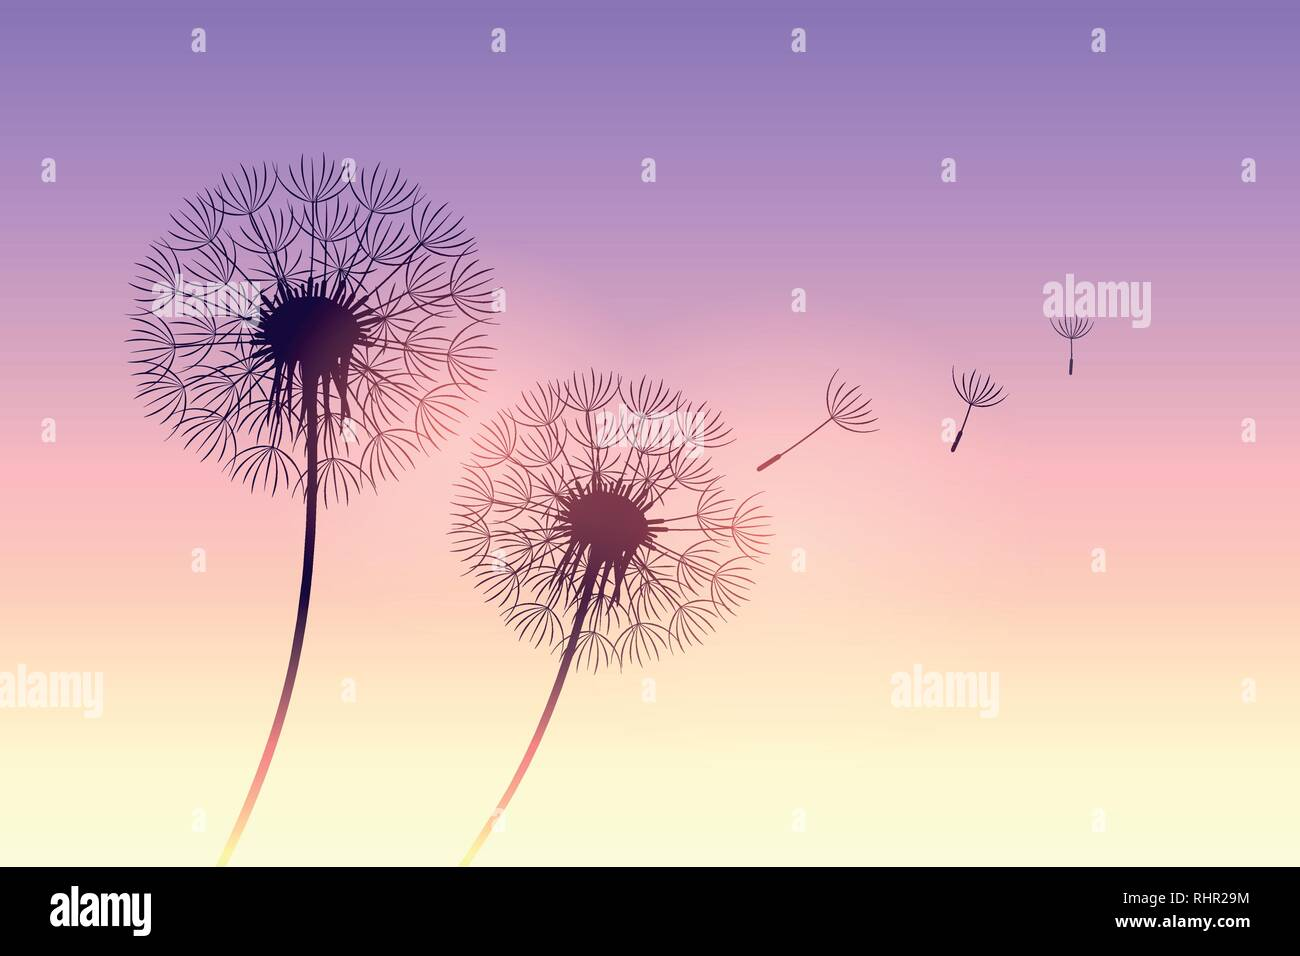 dandelion silhouette at purple sunset with flying seeds vector illustration EPS10 - Stock Vector